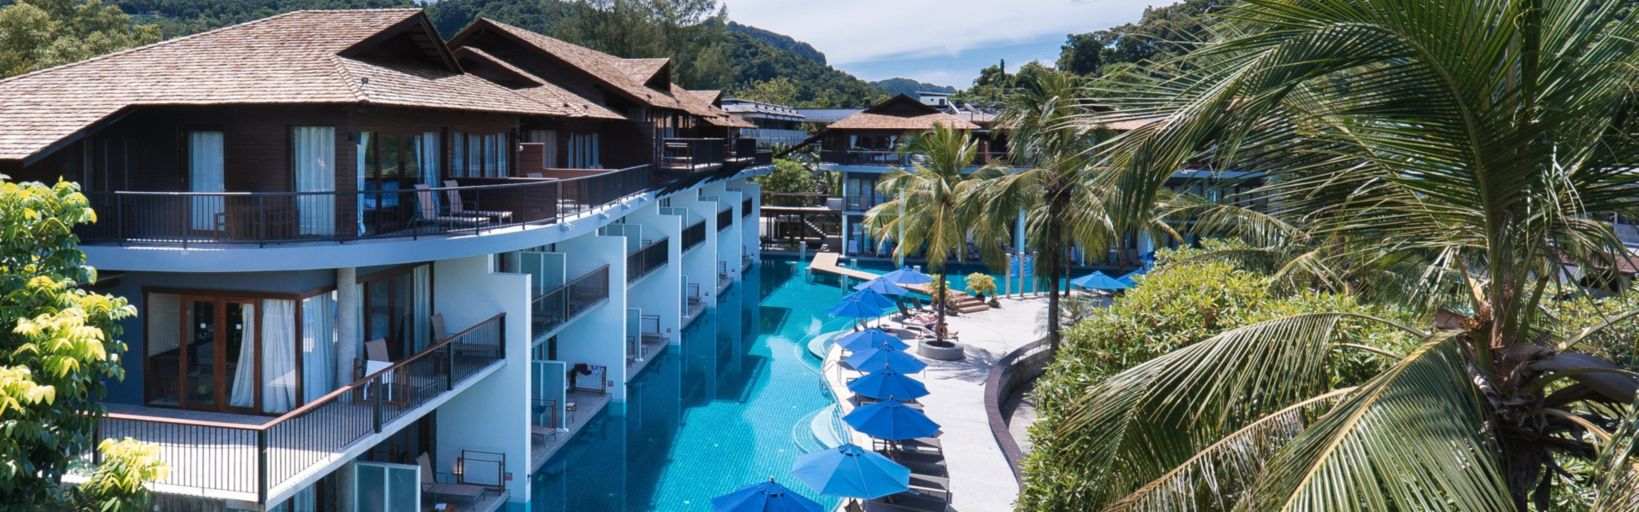 holiday-inn-resort-krabi-5289095709-16×5